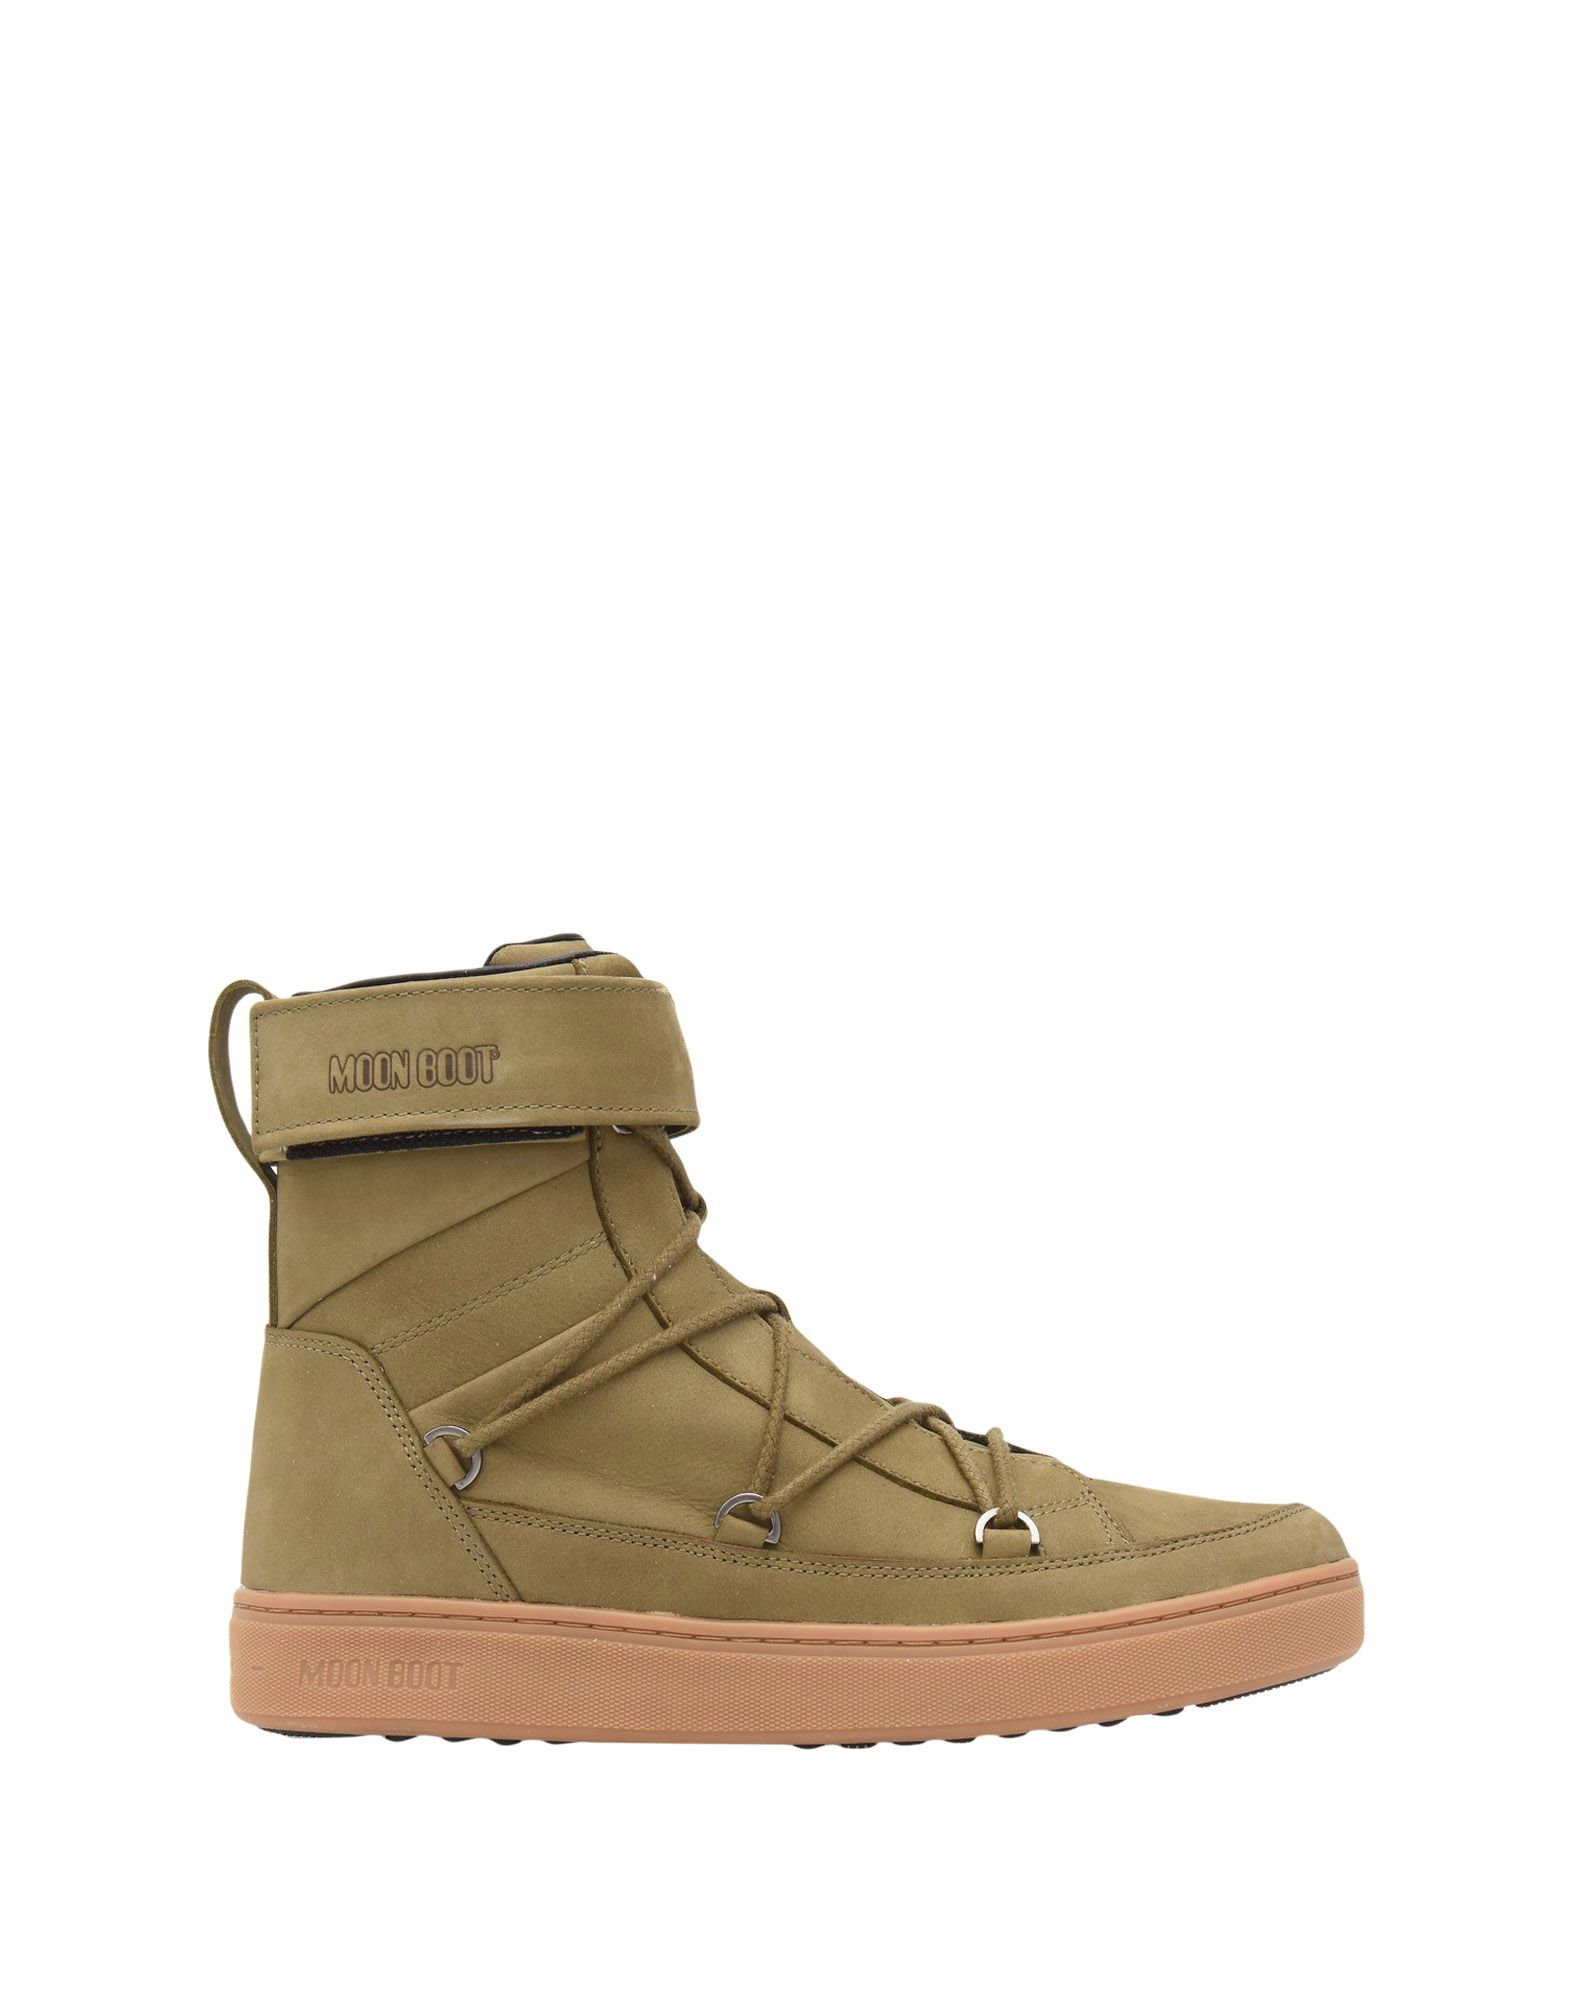 Sneakers Moon Boot Moon Boot Mercury L.A. - Homme - Sneakers Moon Boot sur